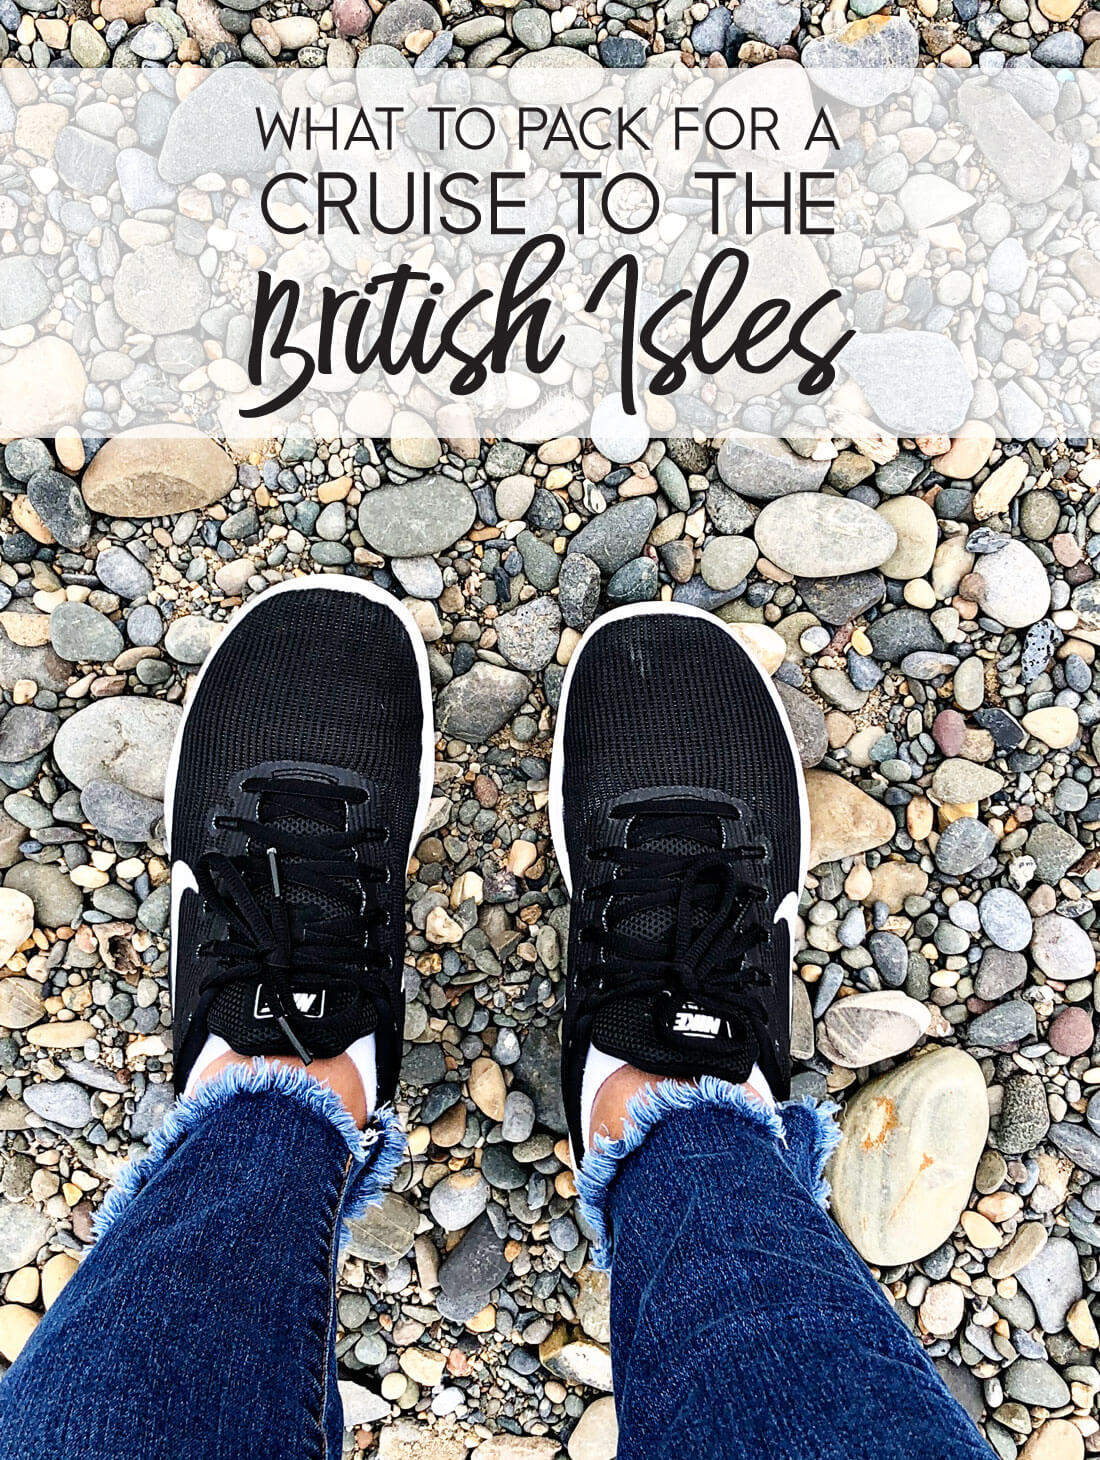 What to pack for a cruise to the British Isles